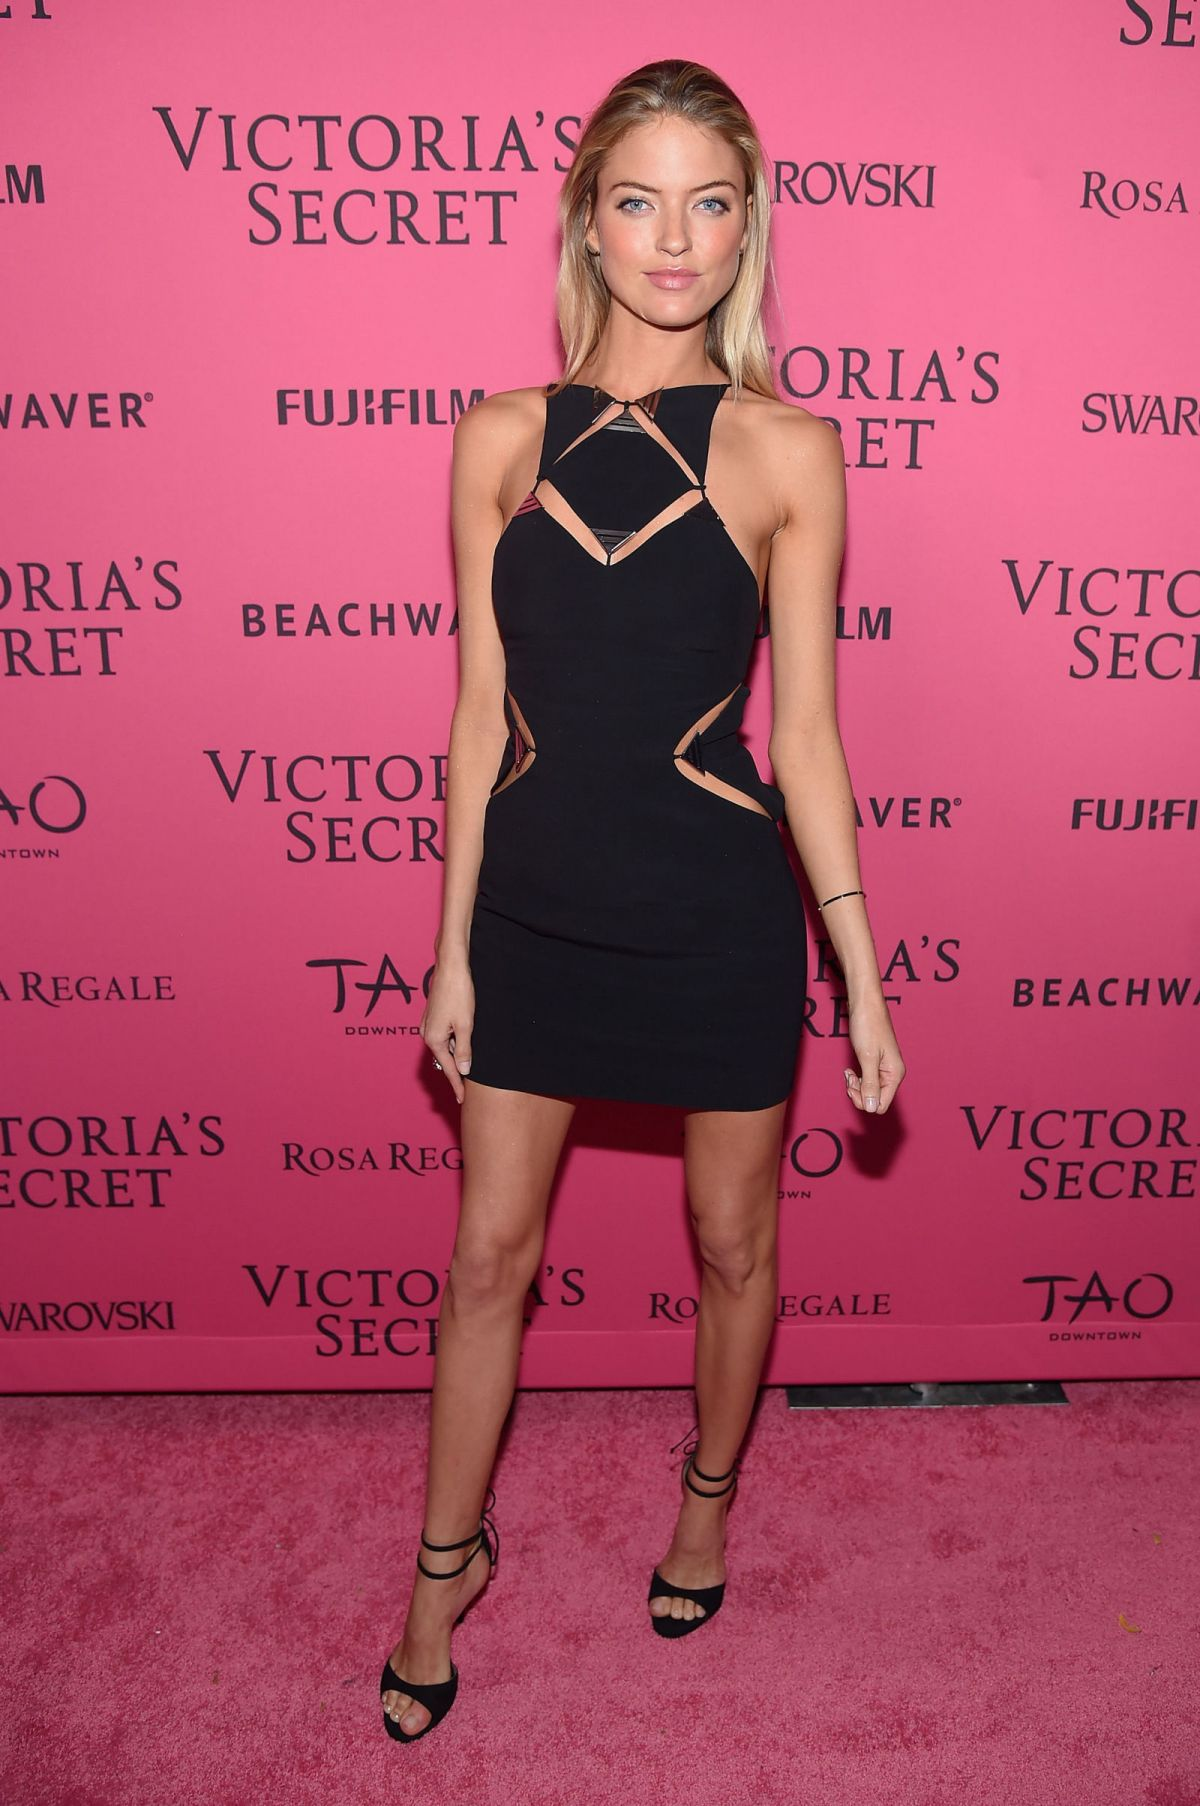 MARTHA HUNT at Victoria's Secret 2015 Fashion Show After Party 11/10/2015